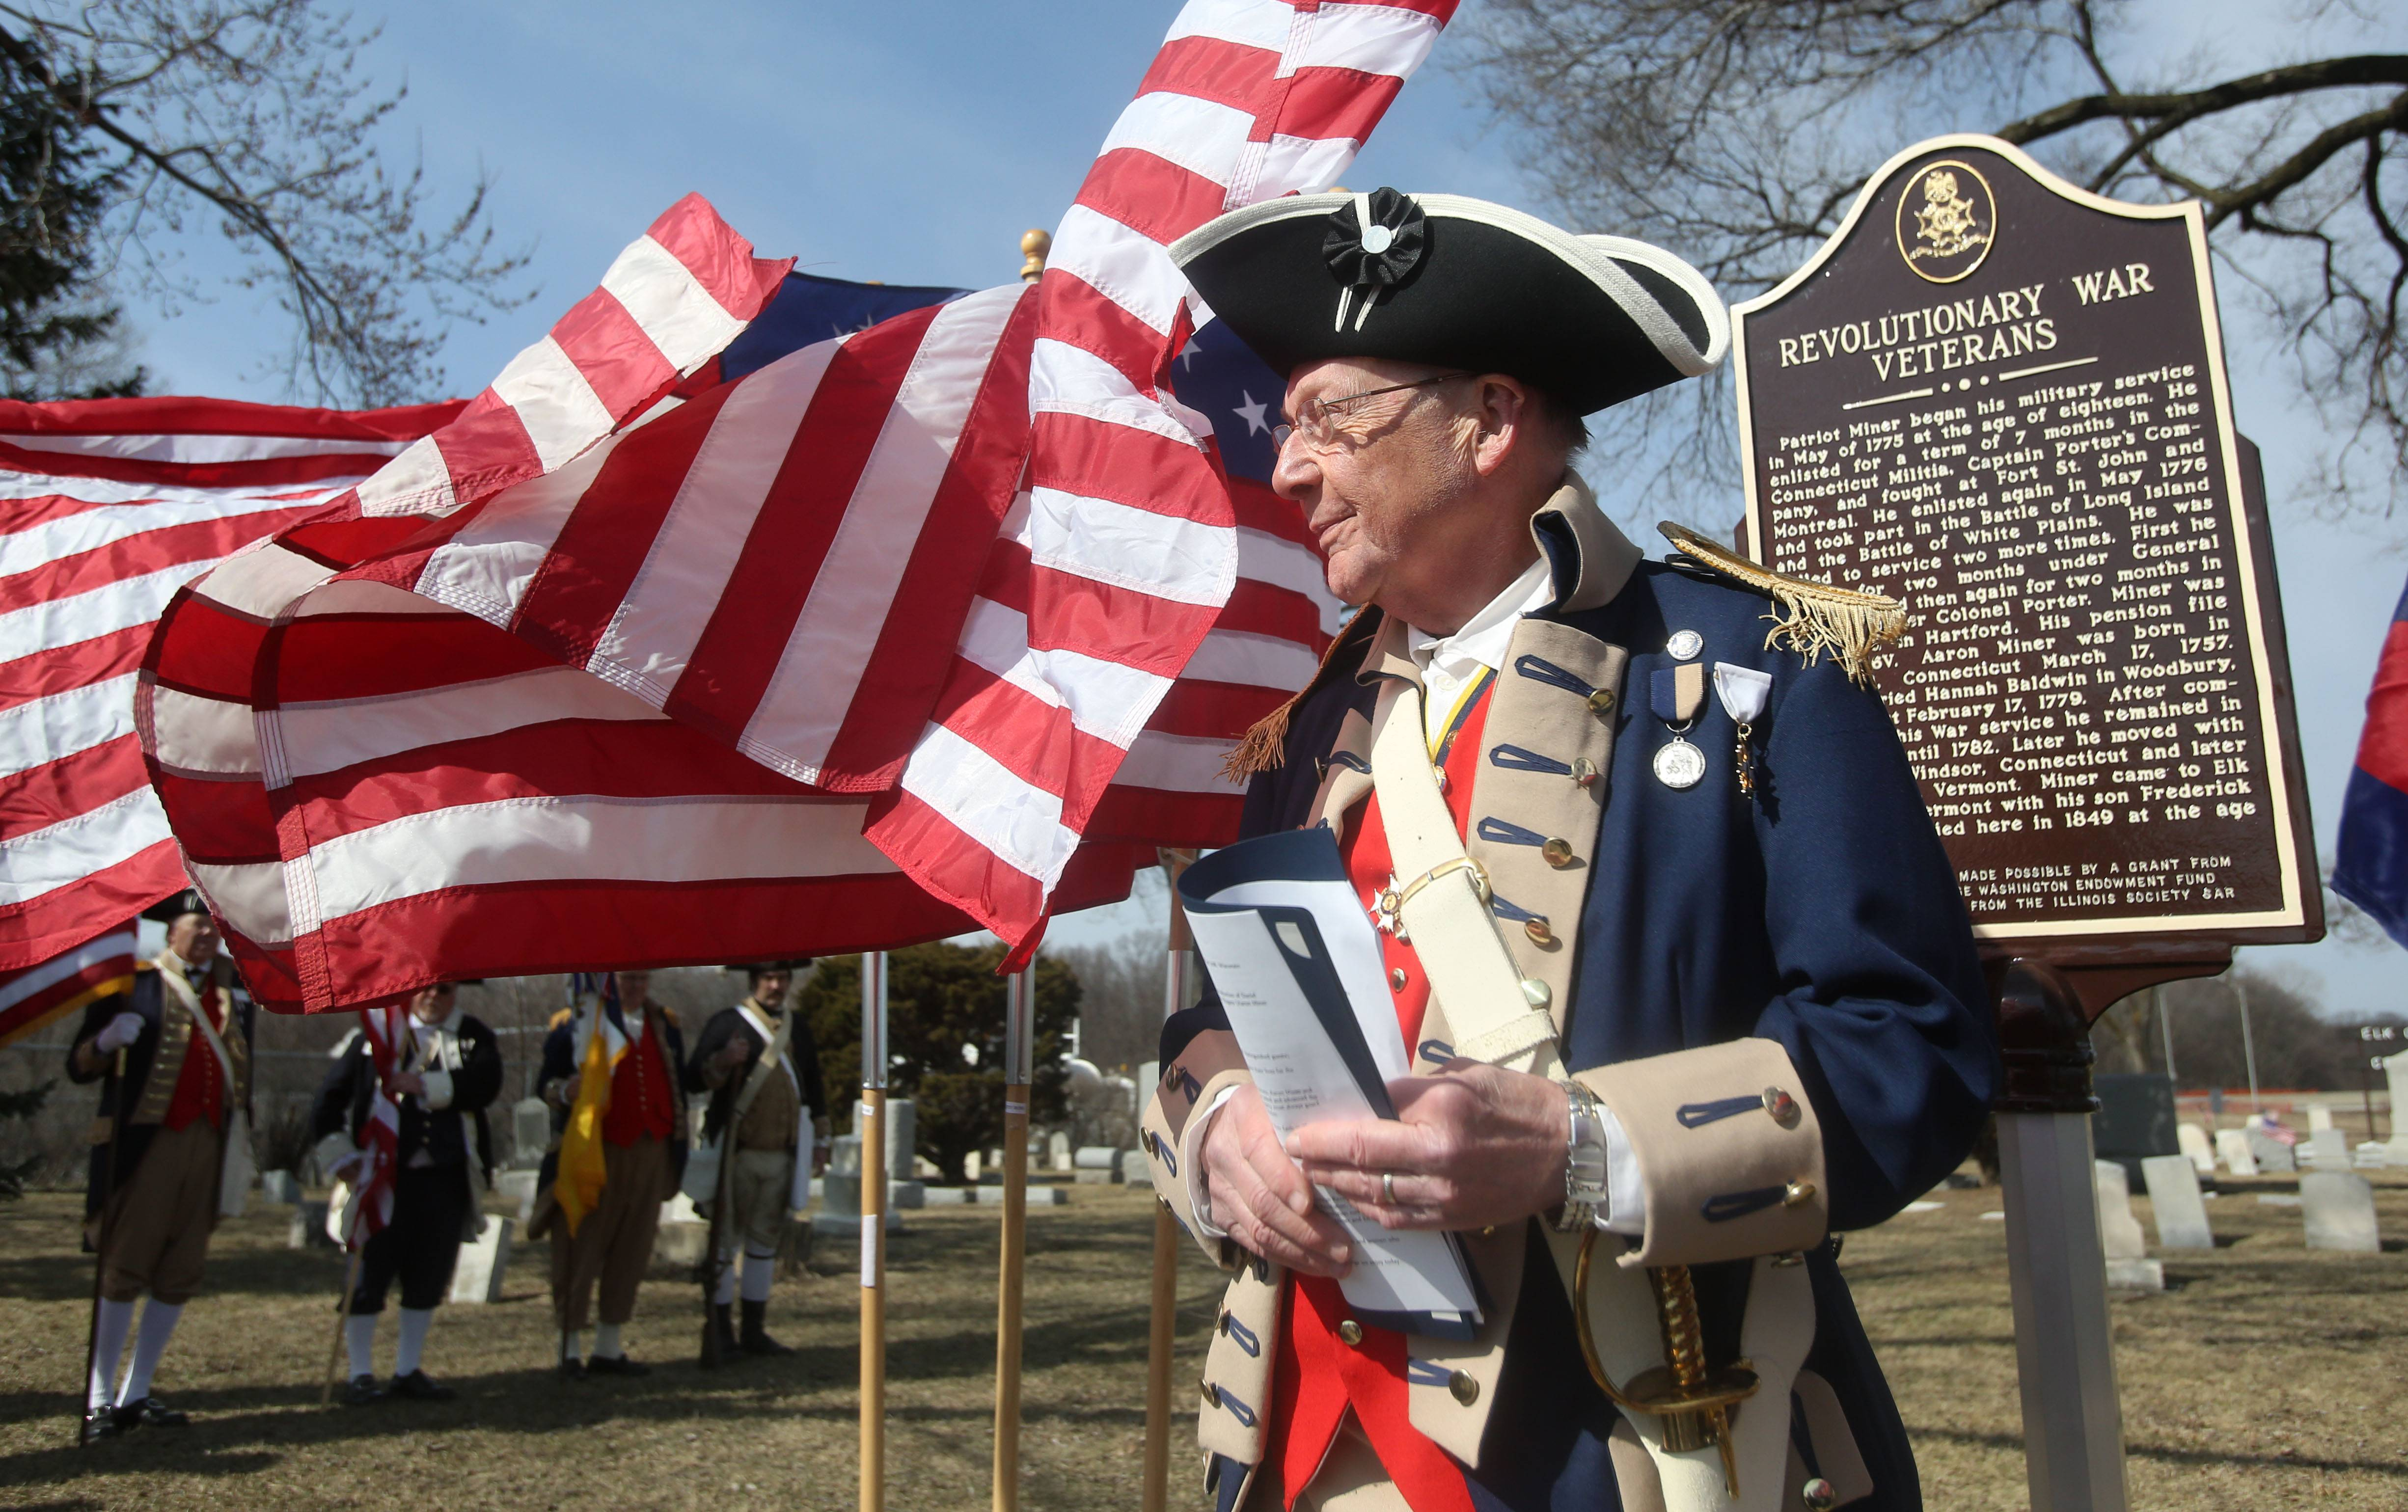 Franz Herder speaks during the Illinois Sons of the American Revolution's installation of a historical marker Sunday at Elk Grove Cemetery, recognizing two Revolutionary war figures buried there.